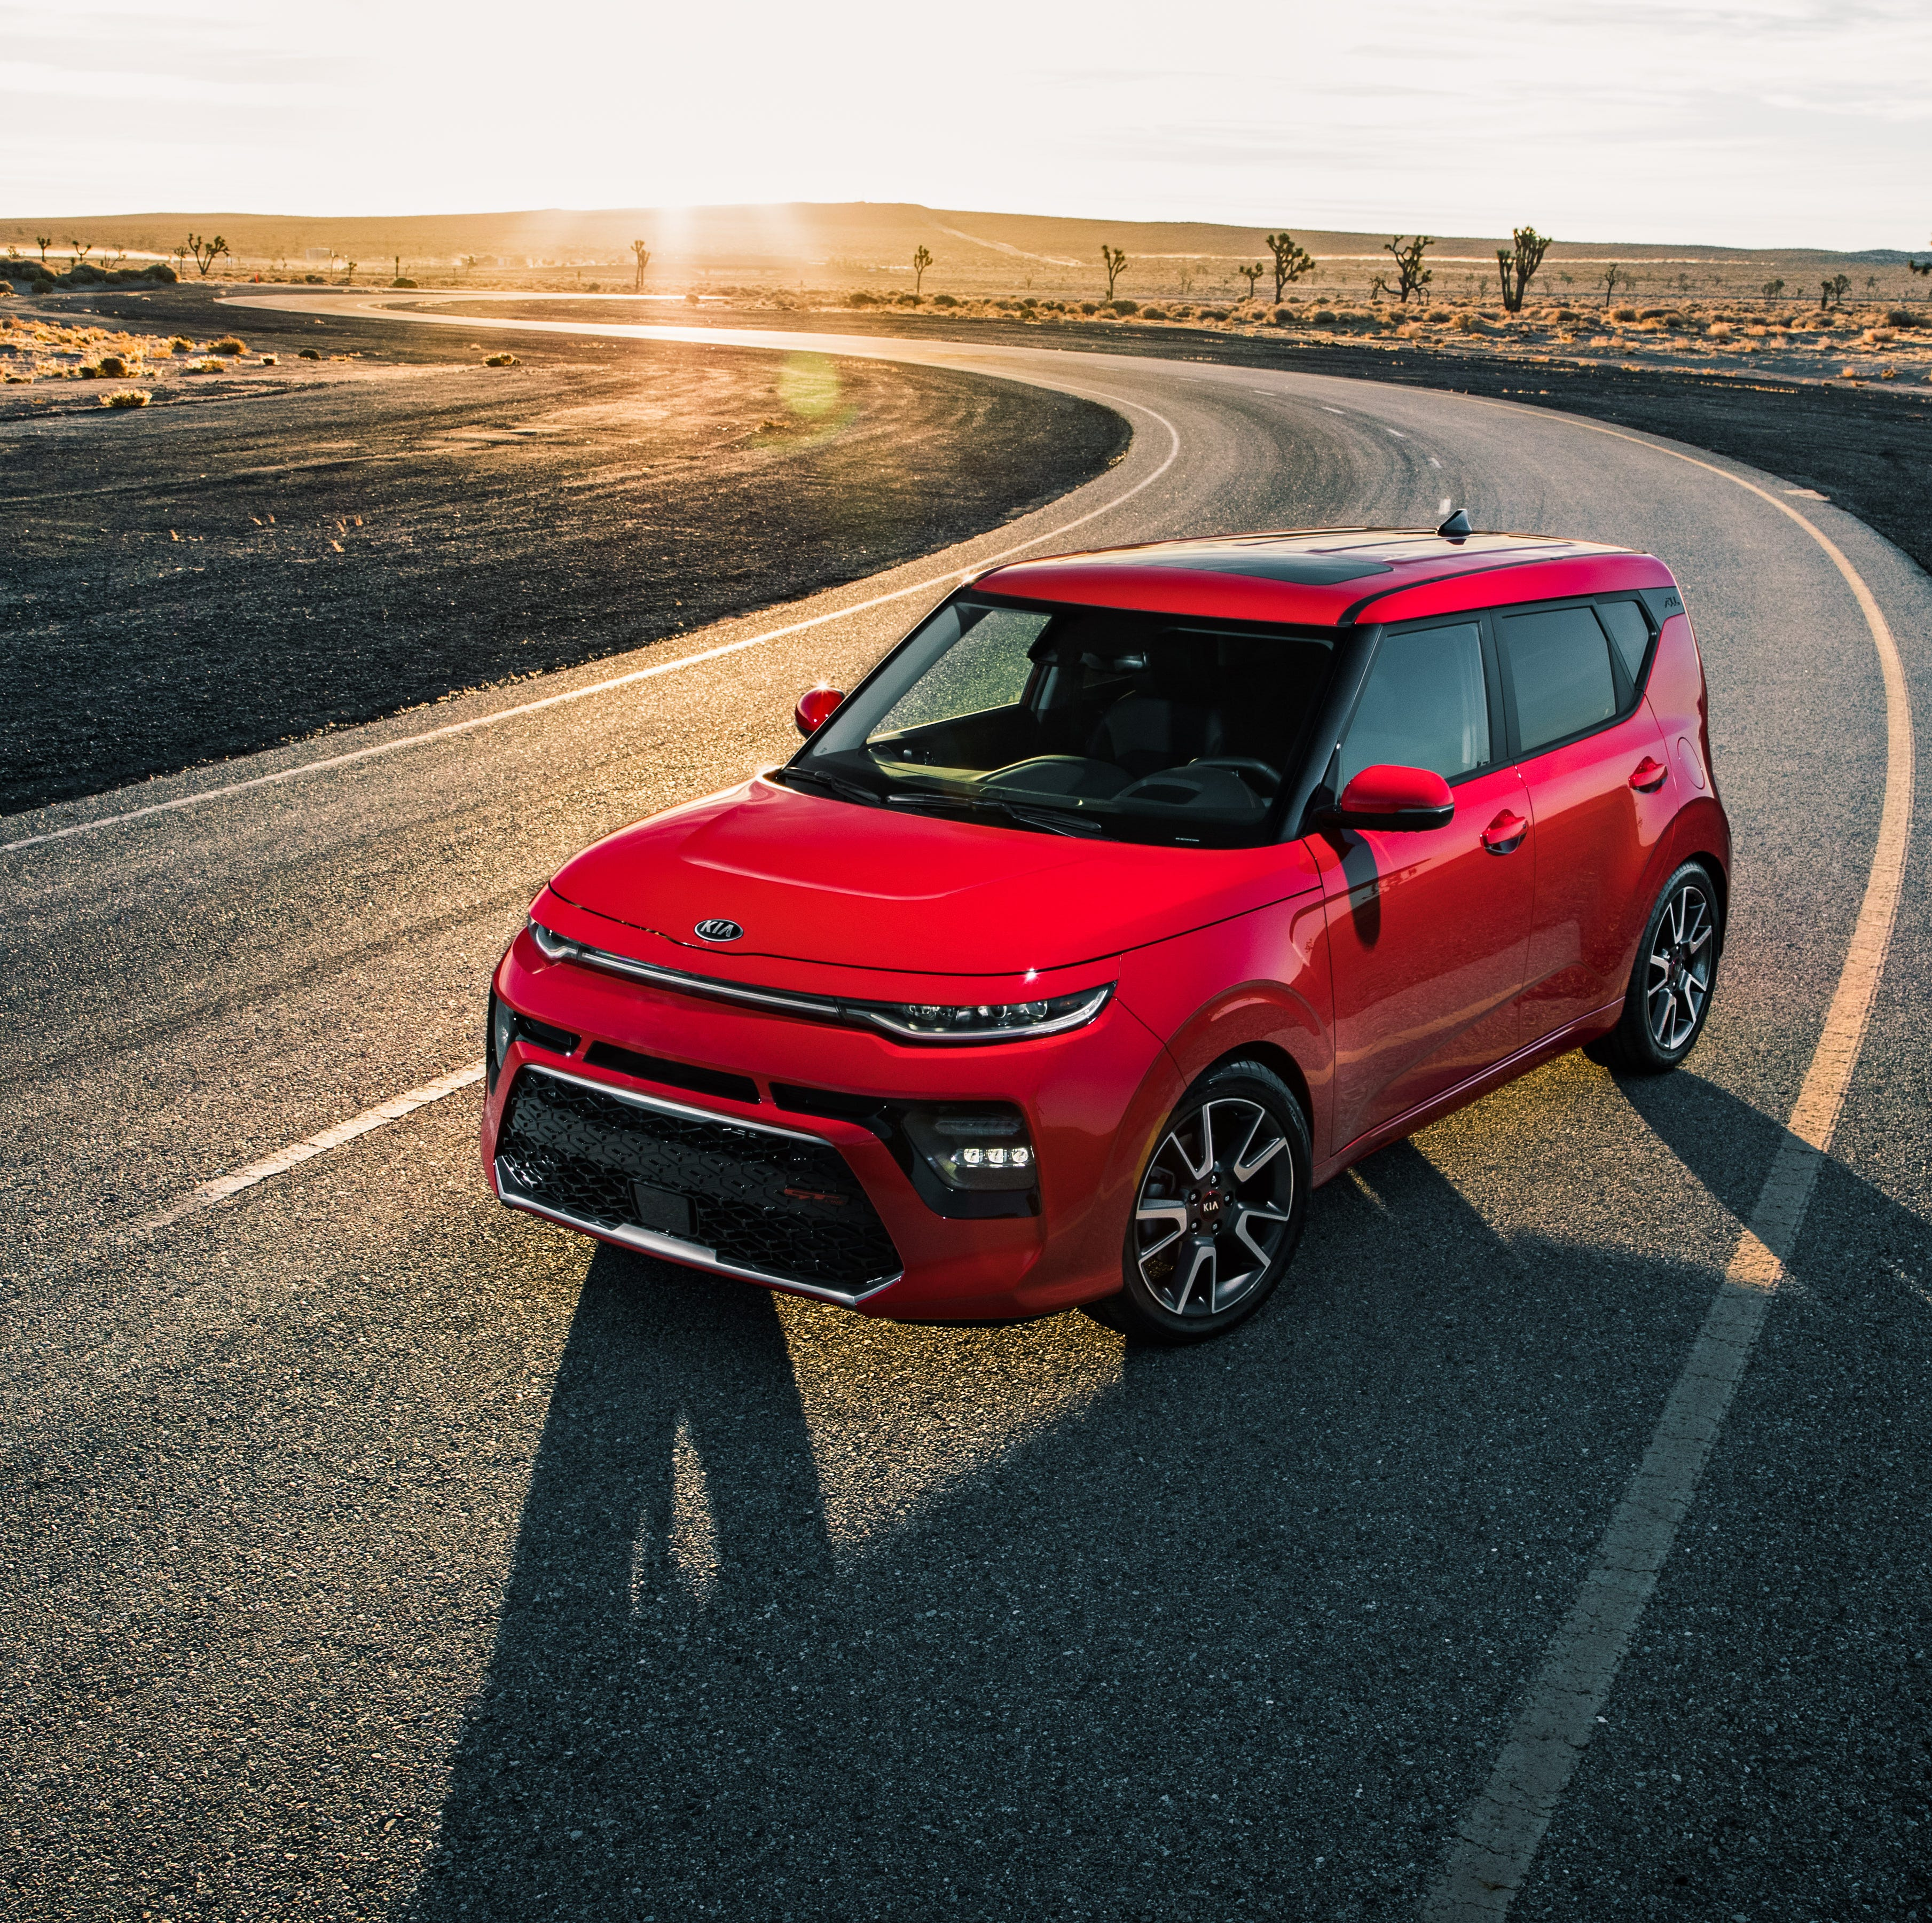 Funkier 2020 Kia Soul thrills drivers of all ages